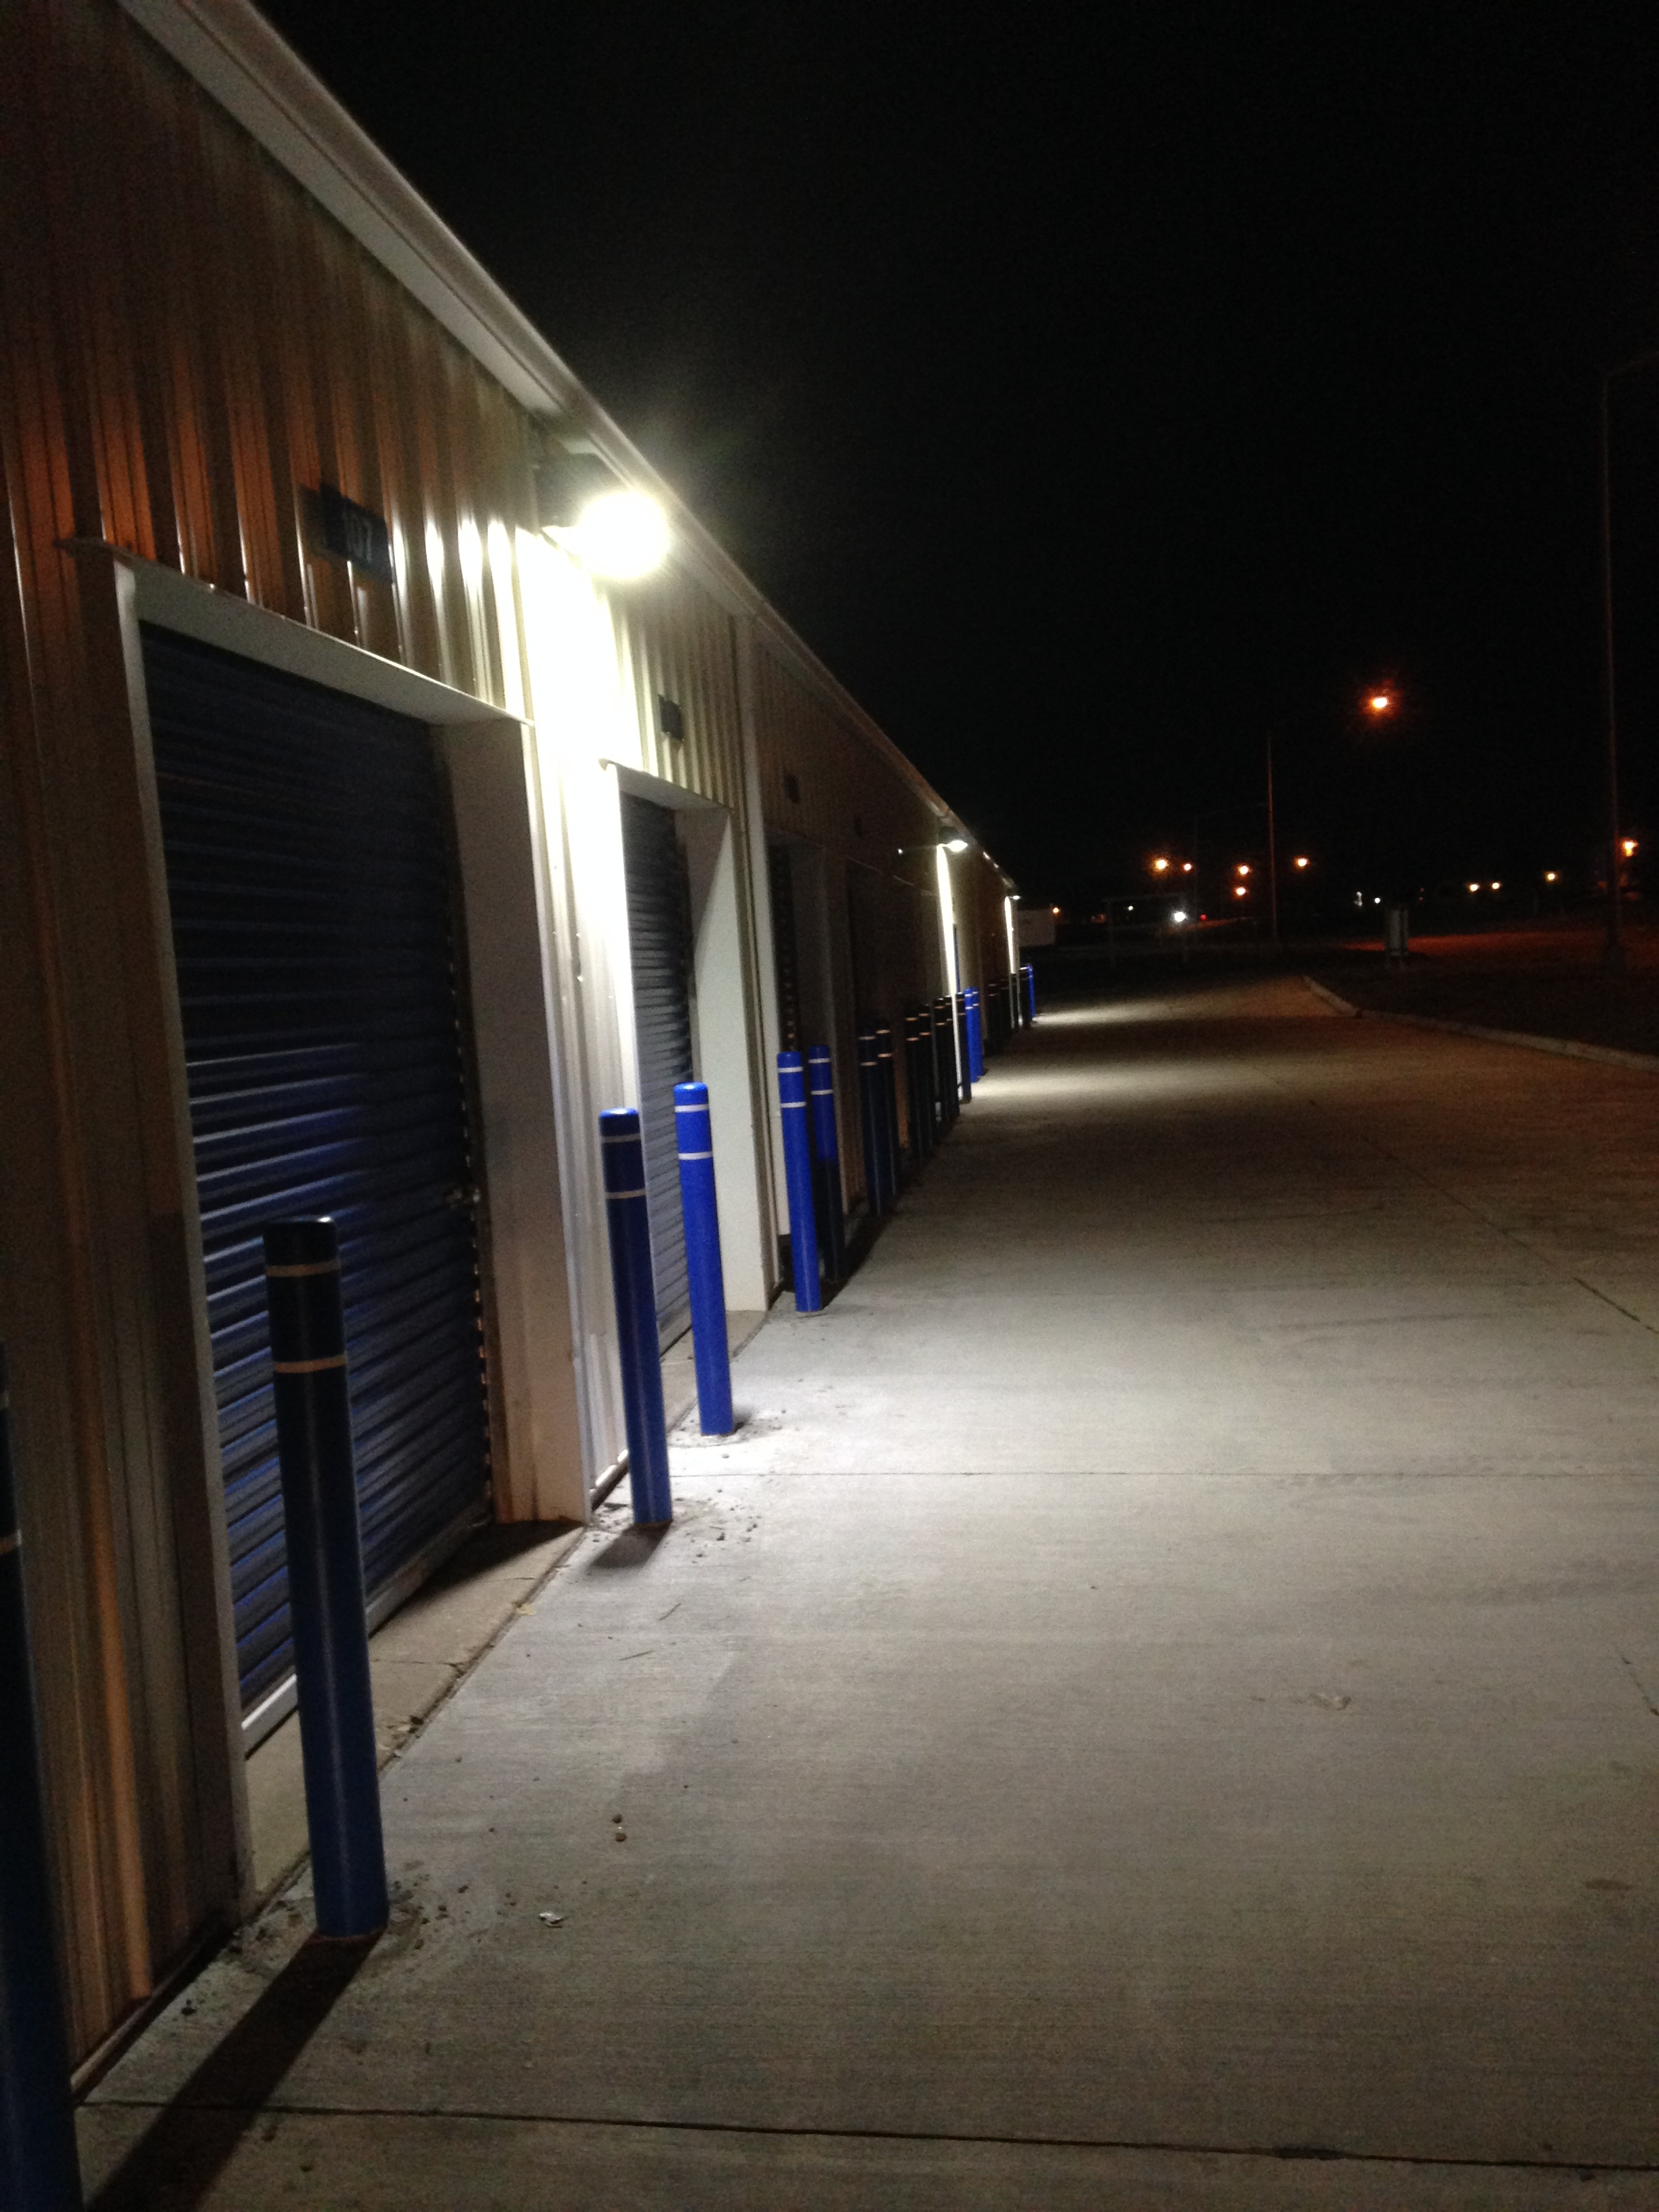 QC Storage offers this Large Garage Space with 8' x 8' Roll-up Door Interior and Exterior Lighting!